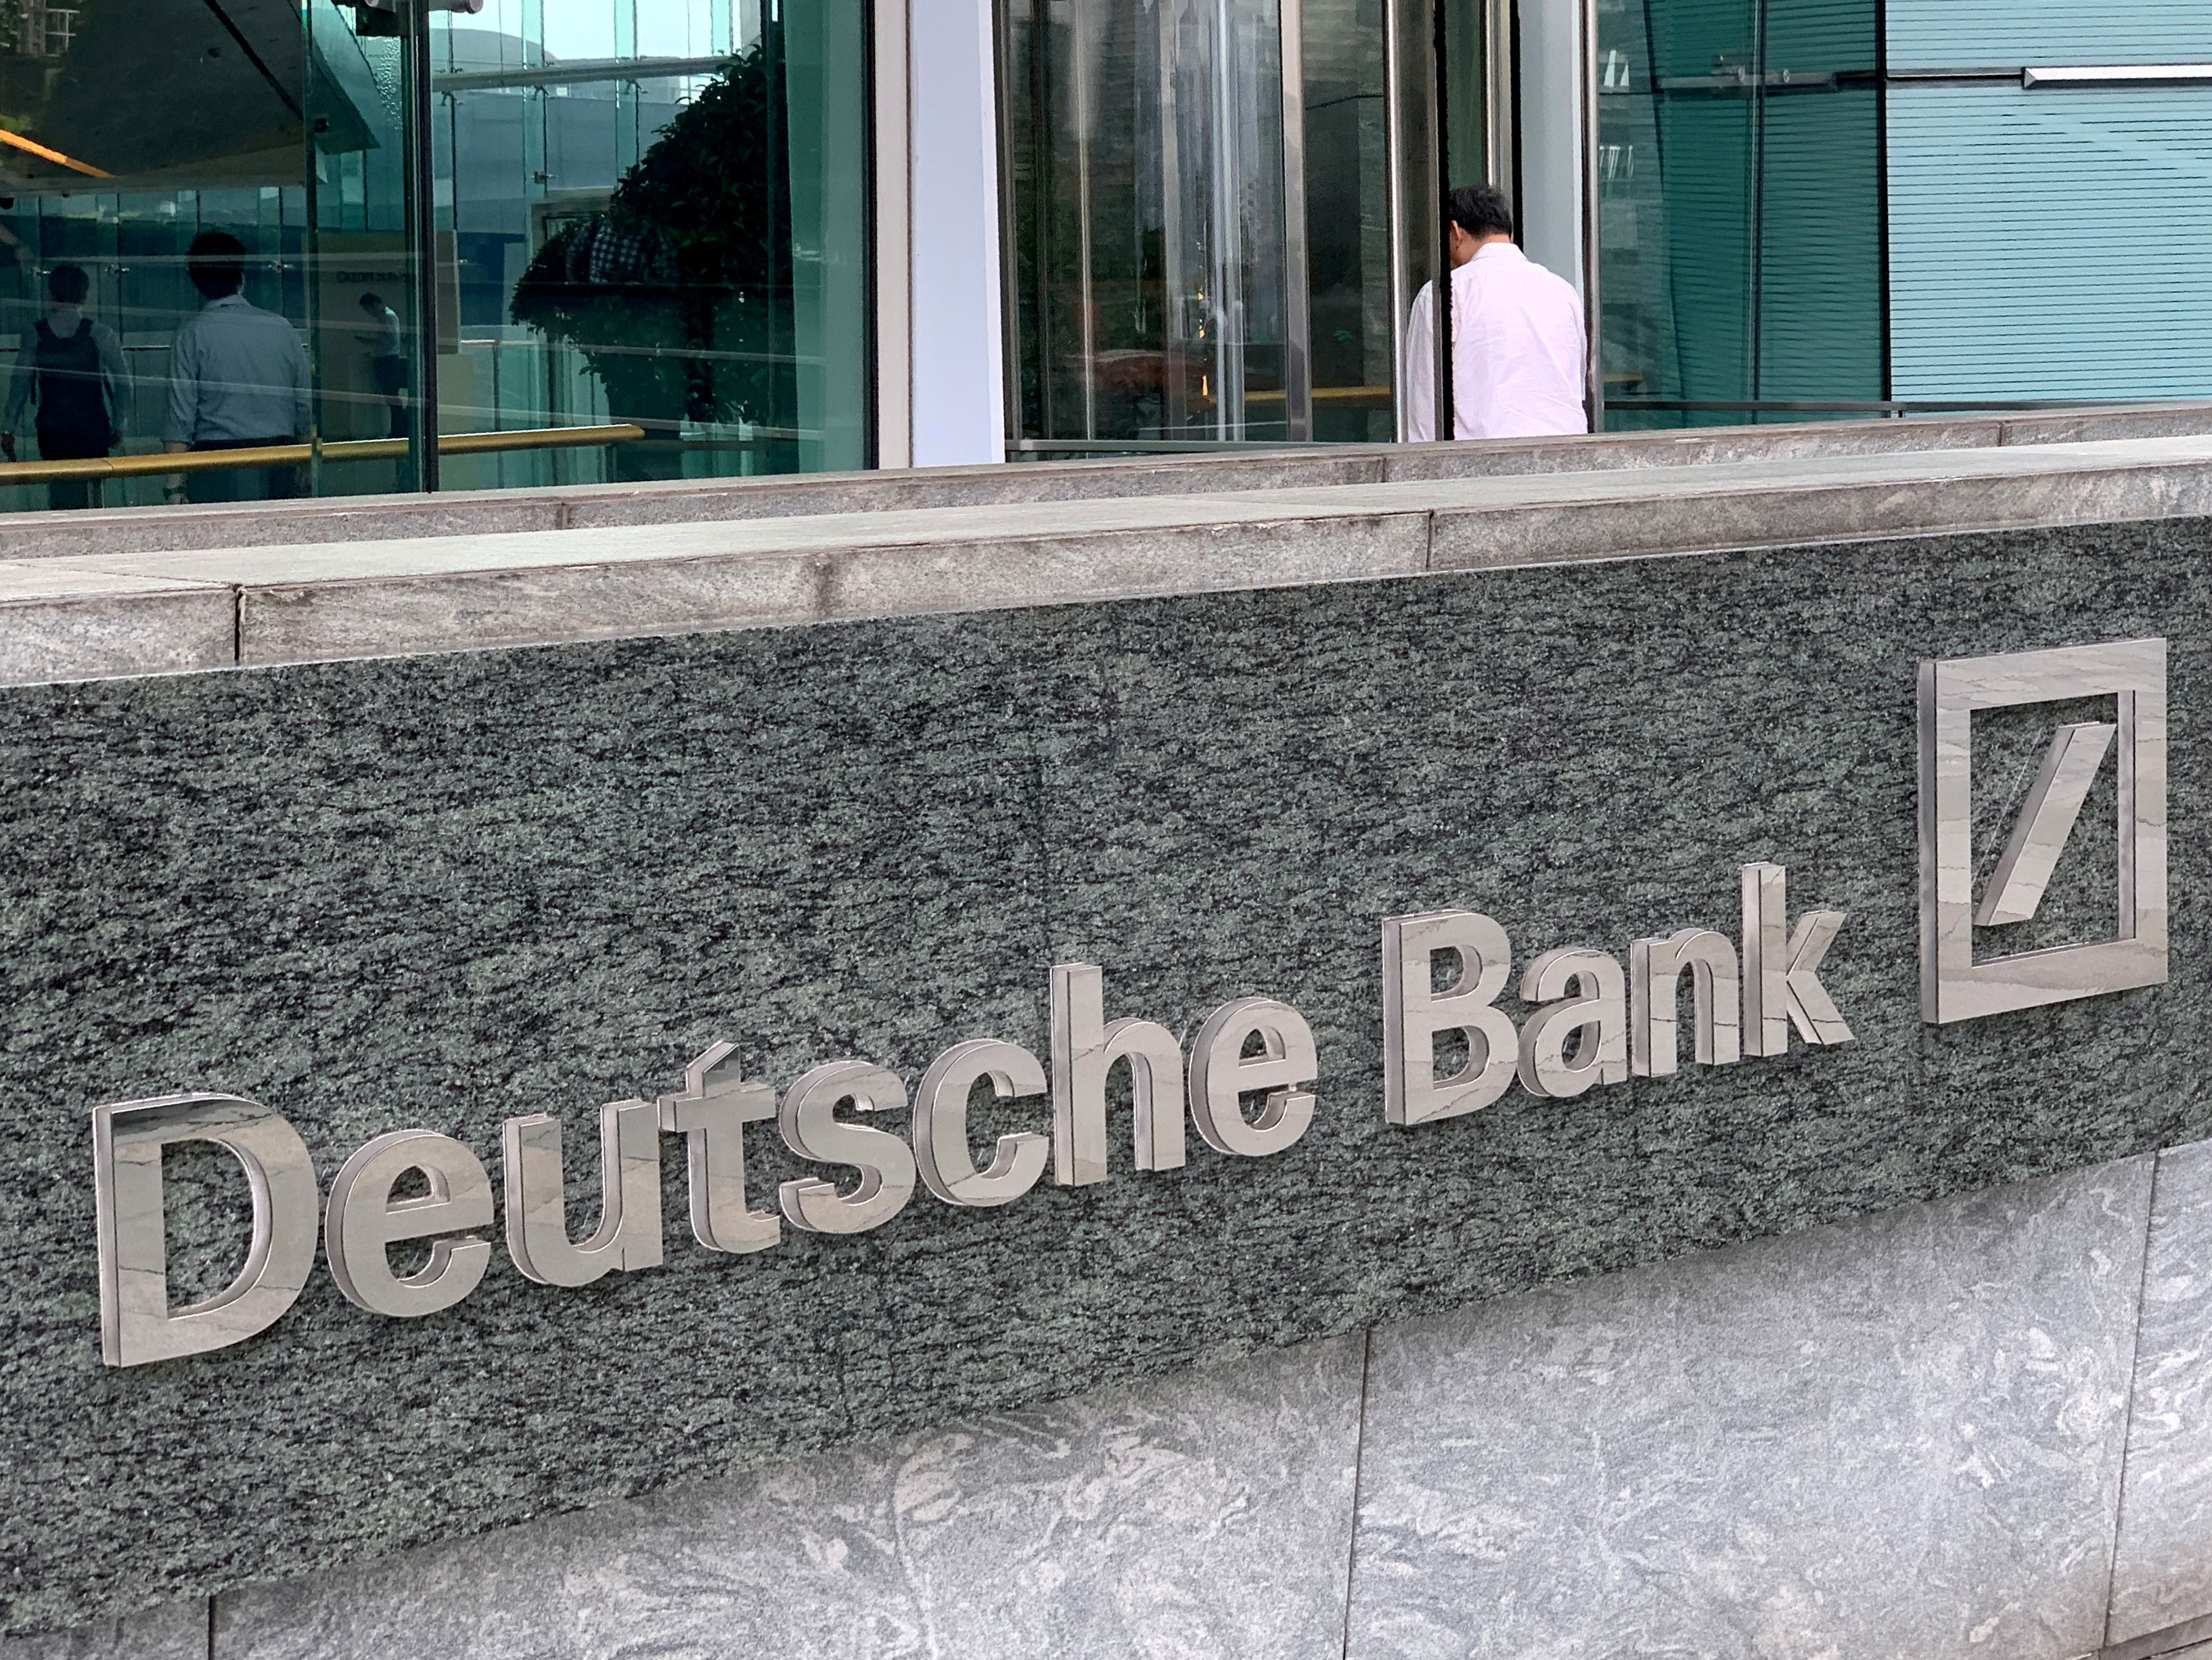 Deutsche Bank waited years before it flagged suspected Estonian money laundering, source says